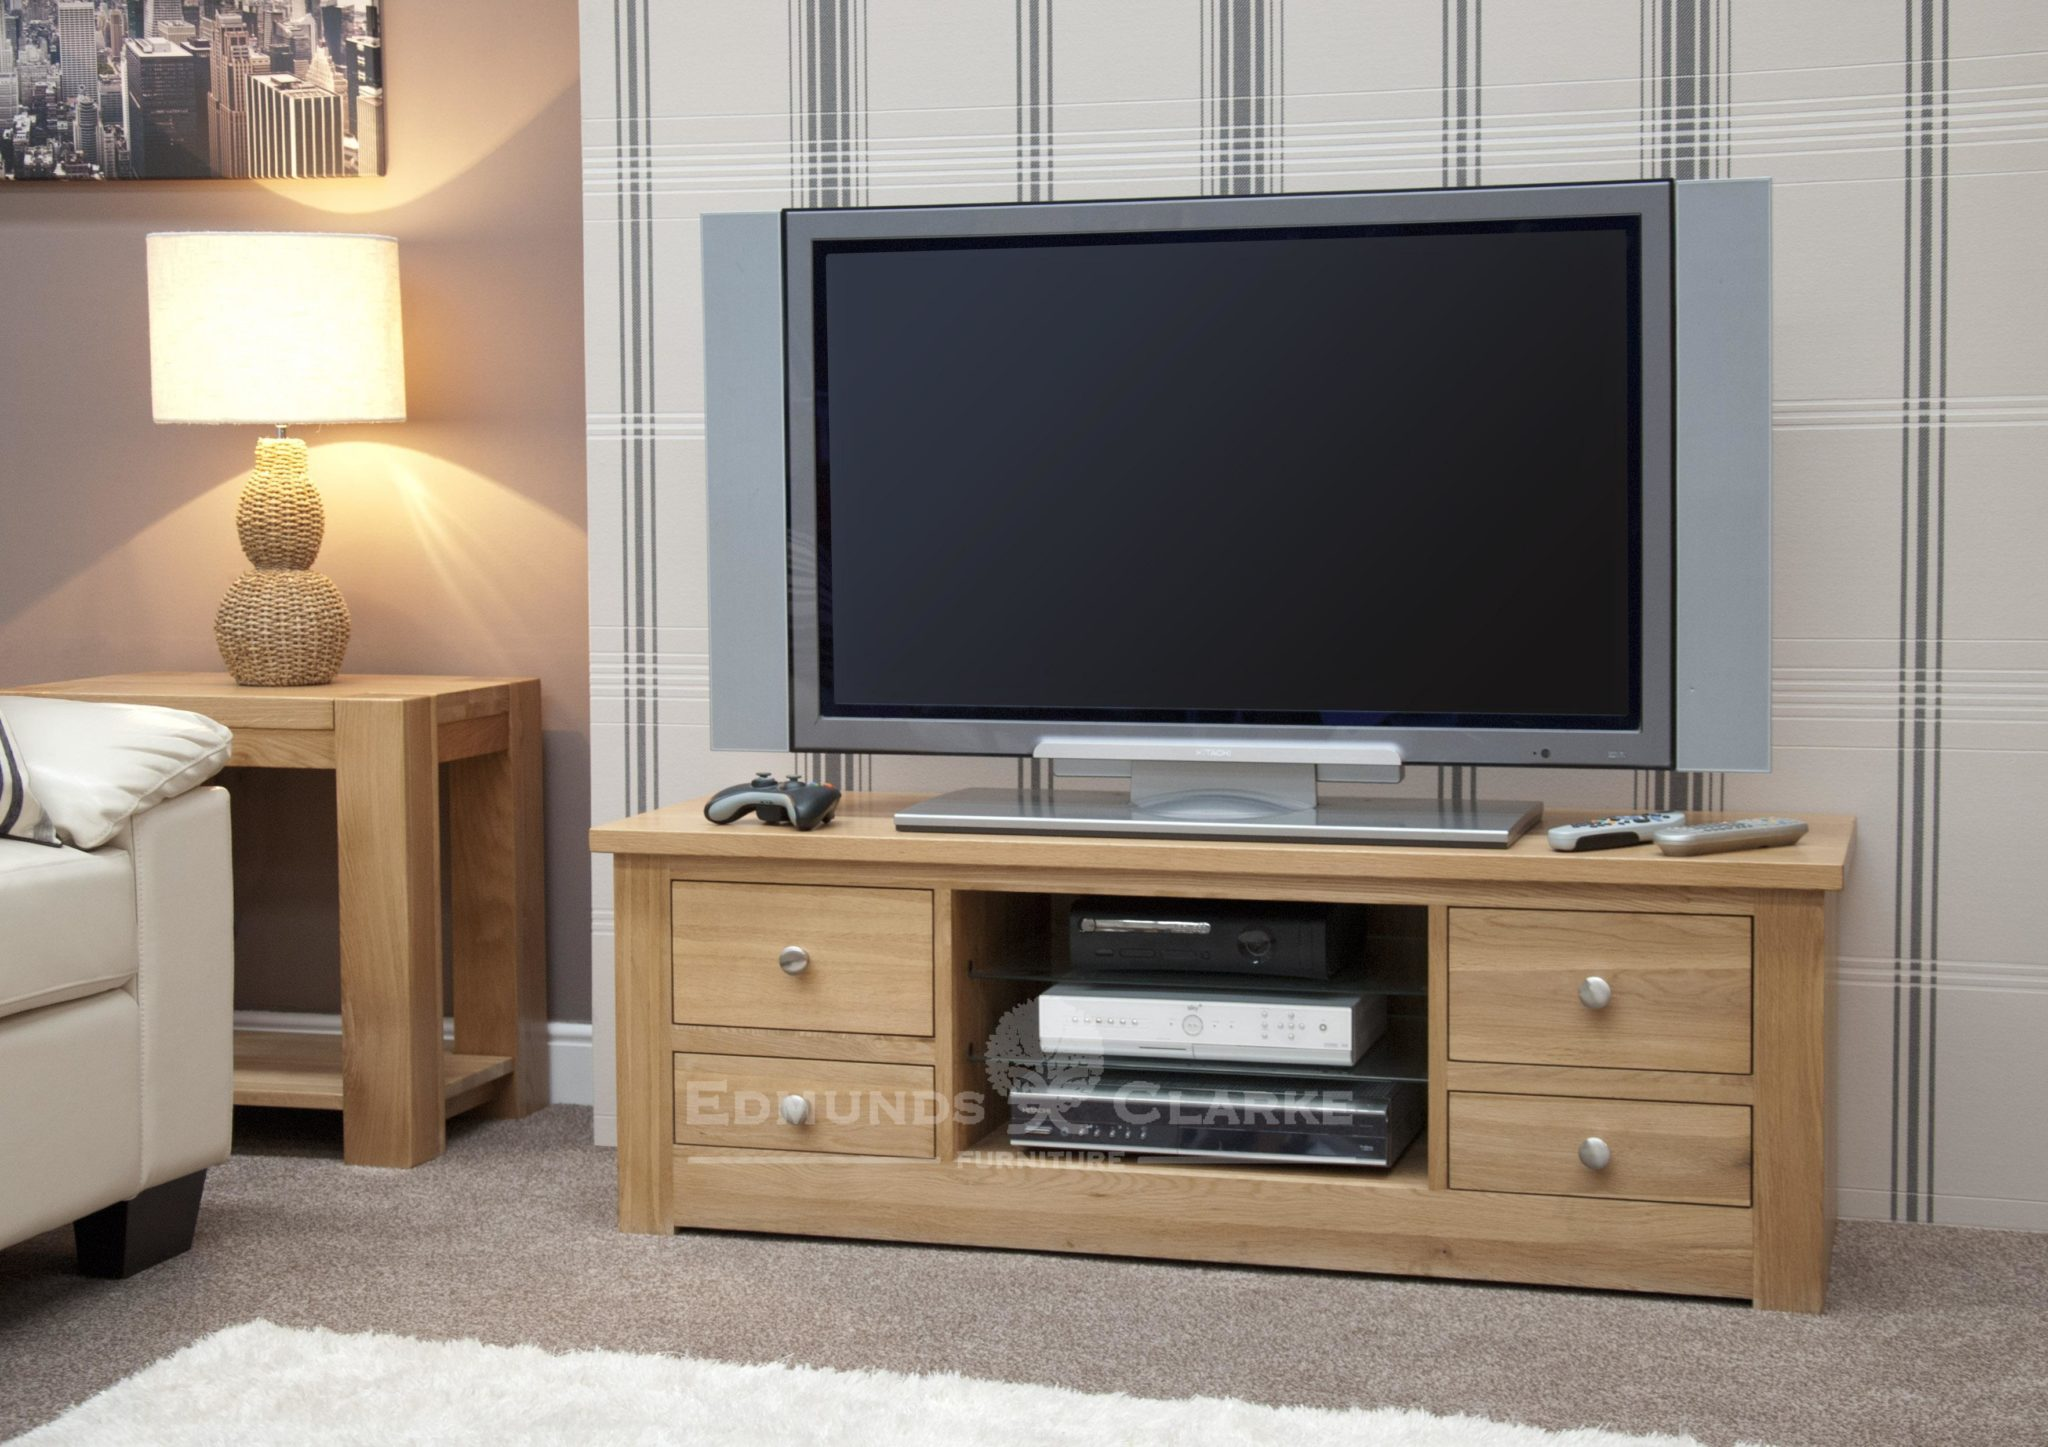 solid oak chunky square edge tv stand with two drawers down either side and open space and three shelves in centre 140cm wide